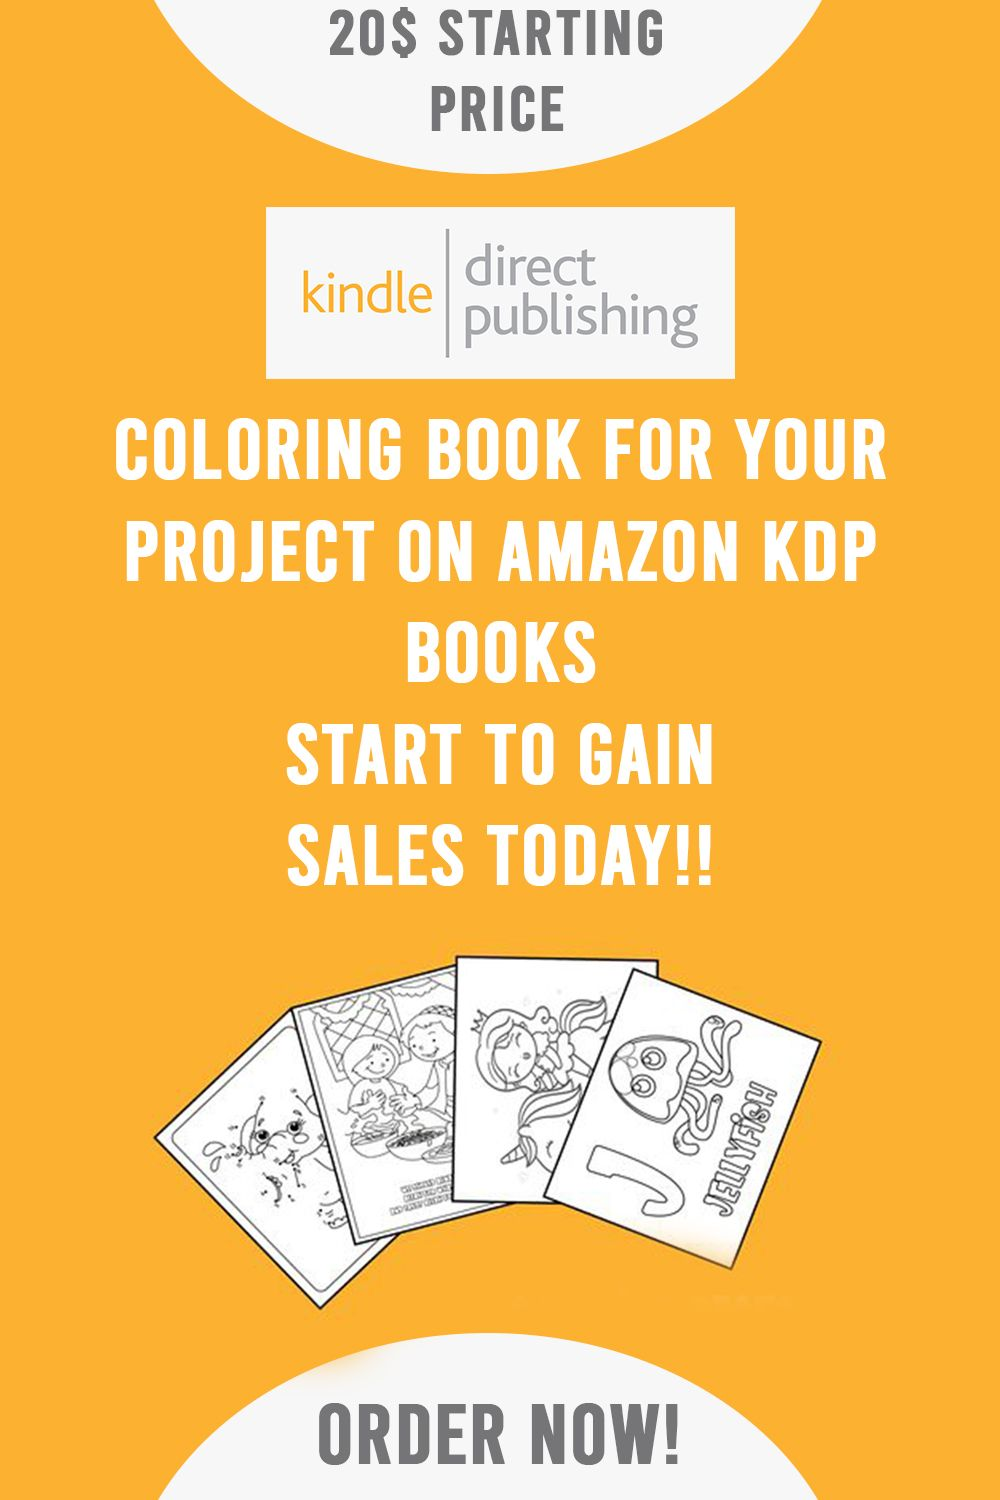 Abdealazizaz294 I Will Coloring Book For Your Project On Amazon Kdp Books For 20 On Fiverr Com Coloring Books Books Book Activities